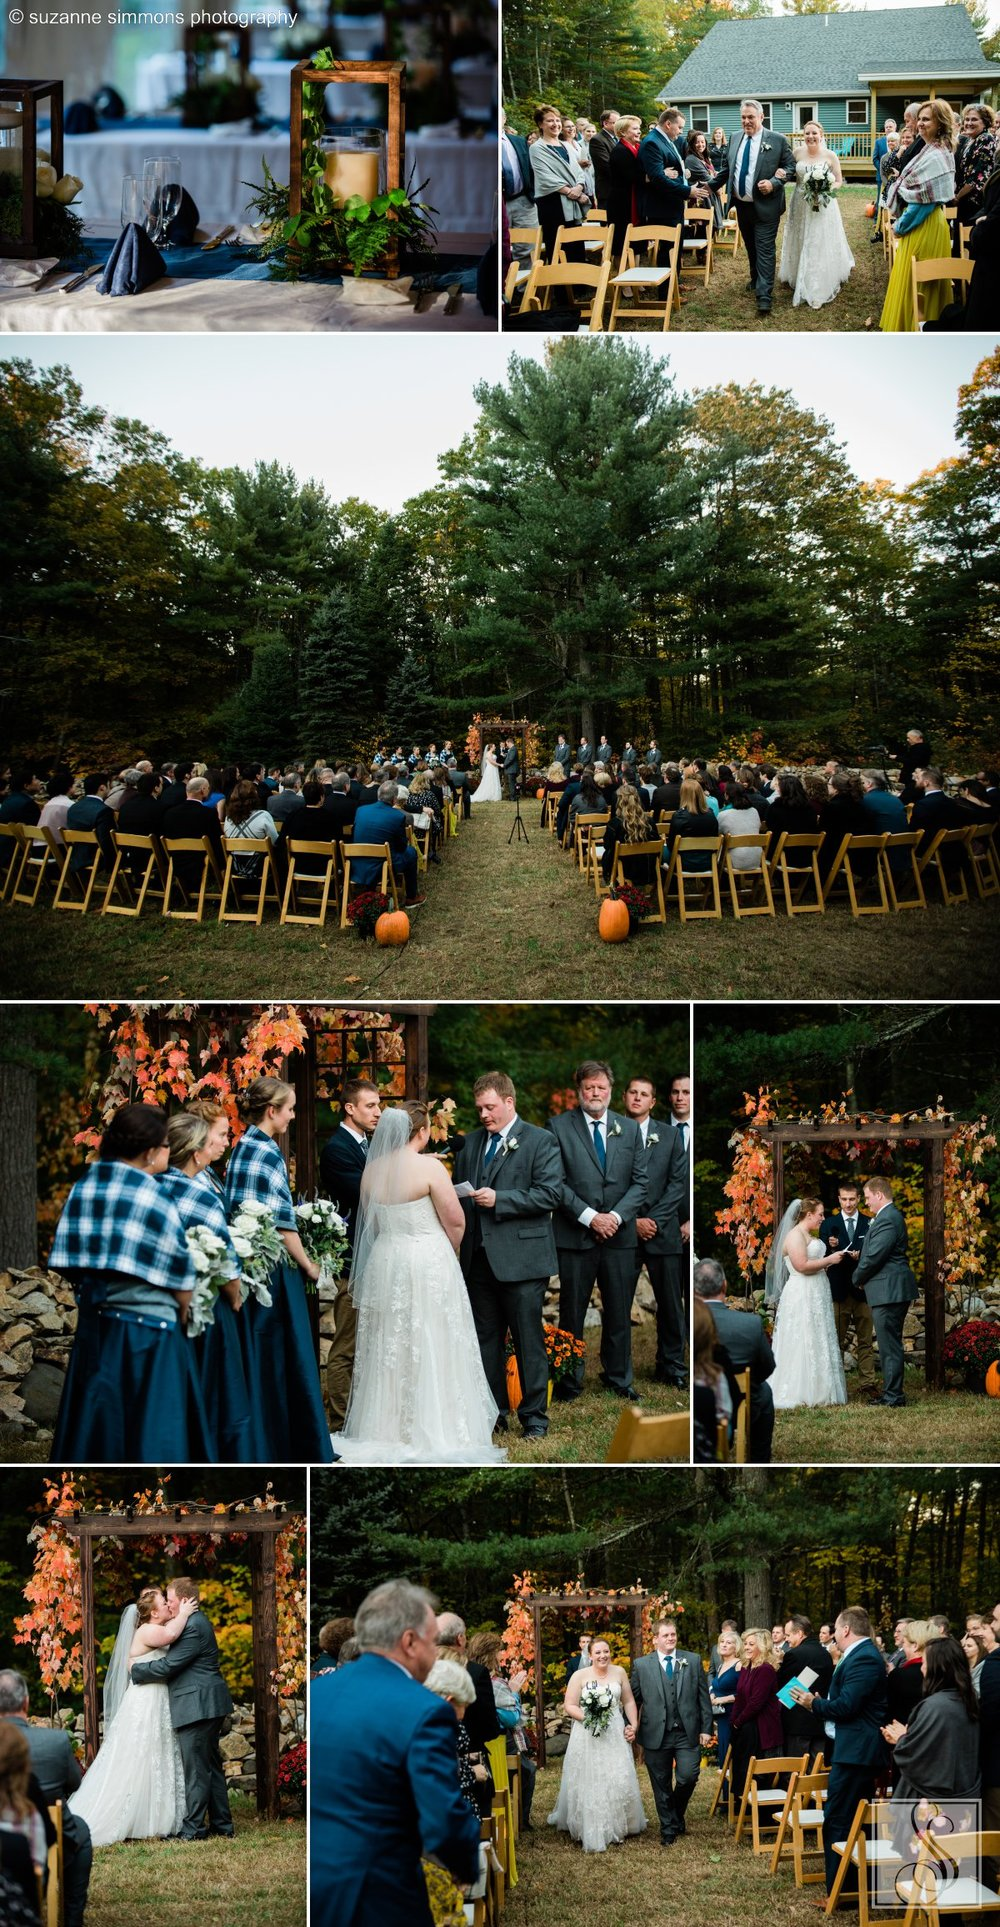 Wedding ceremony in Wells, Maine